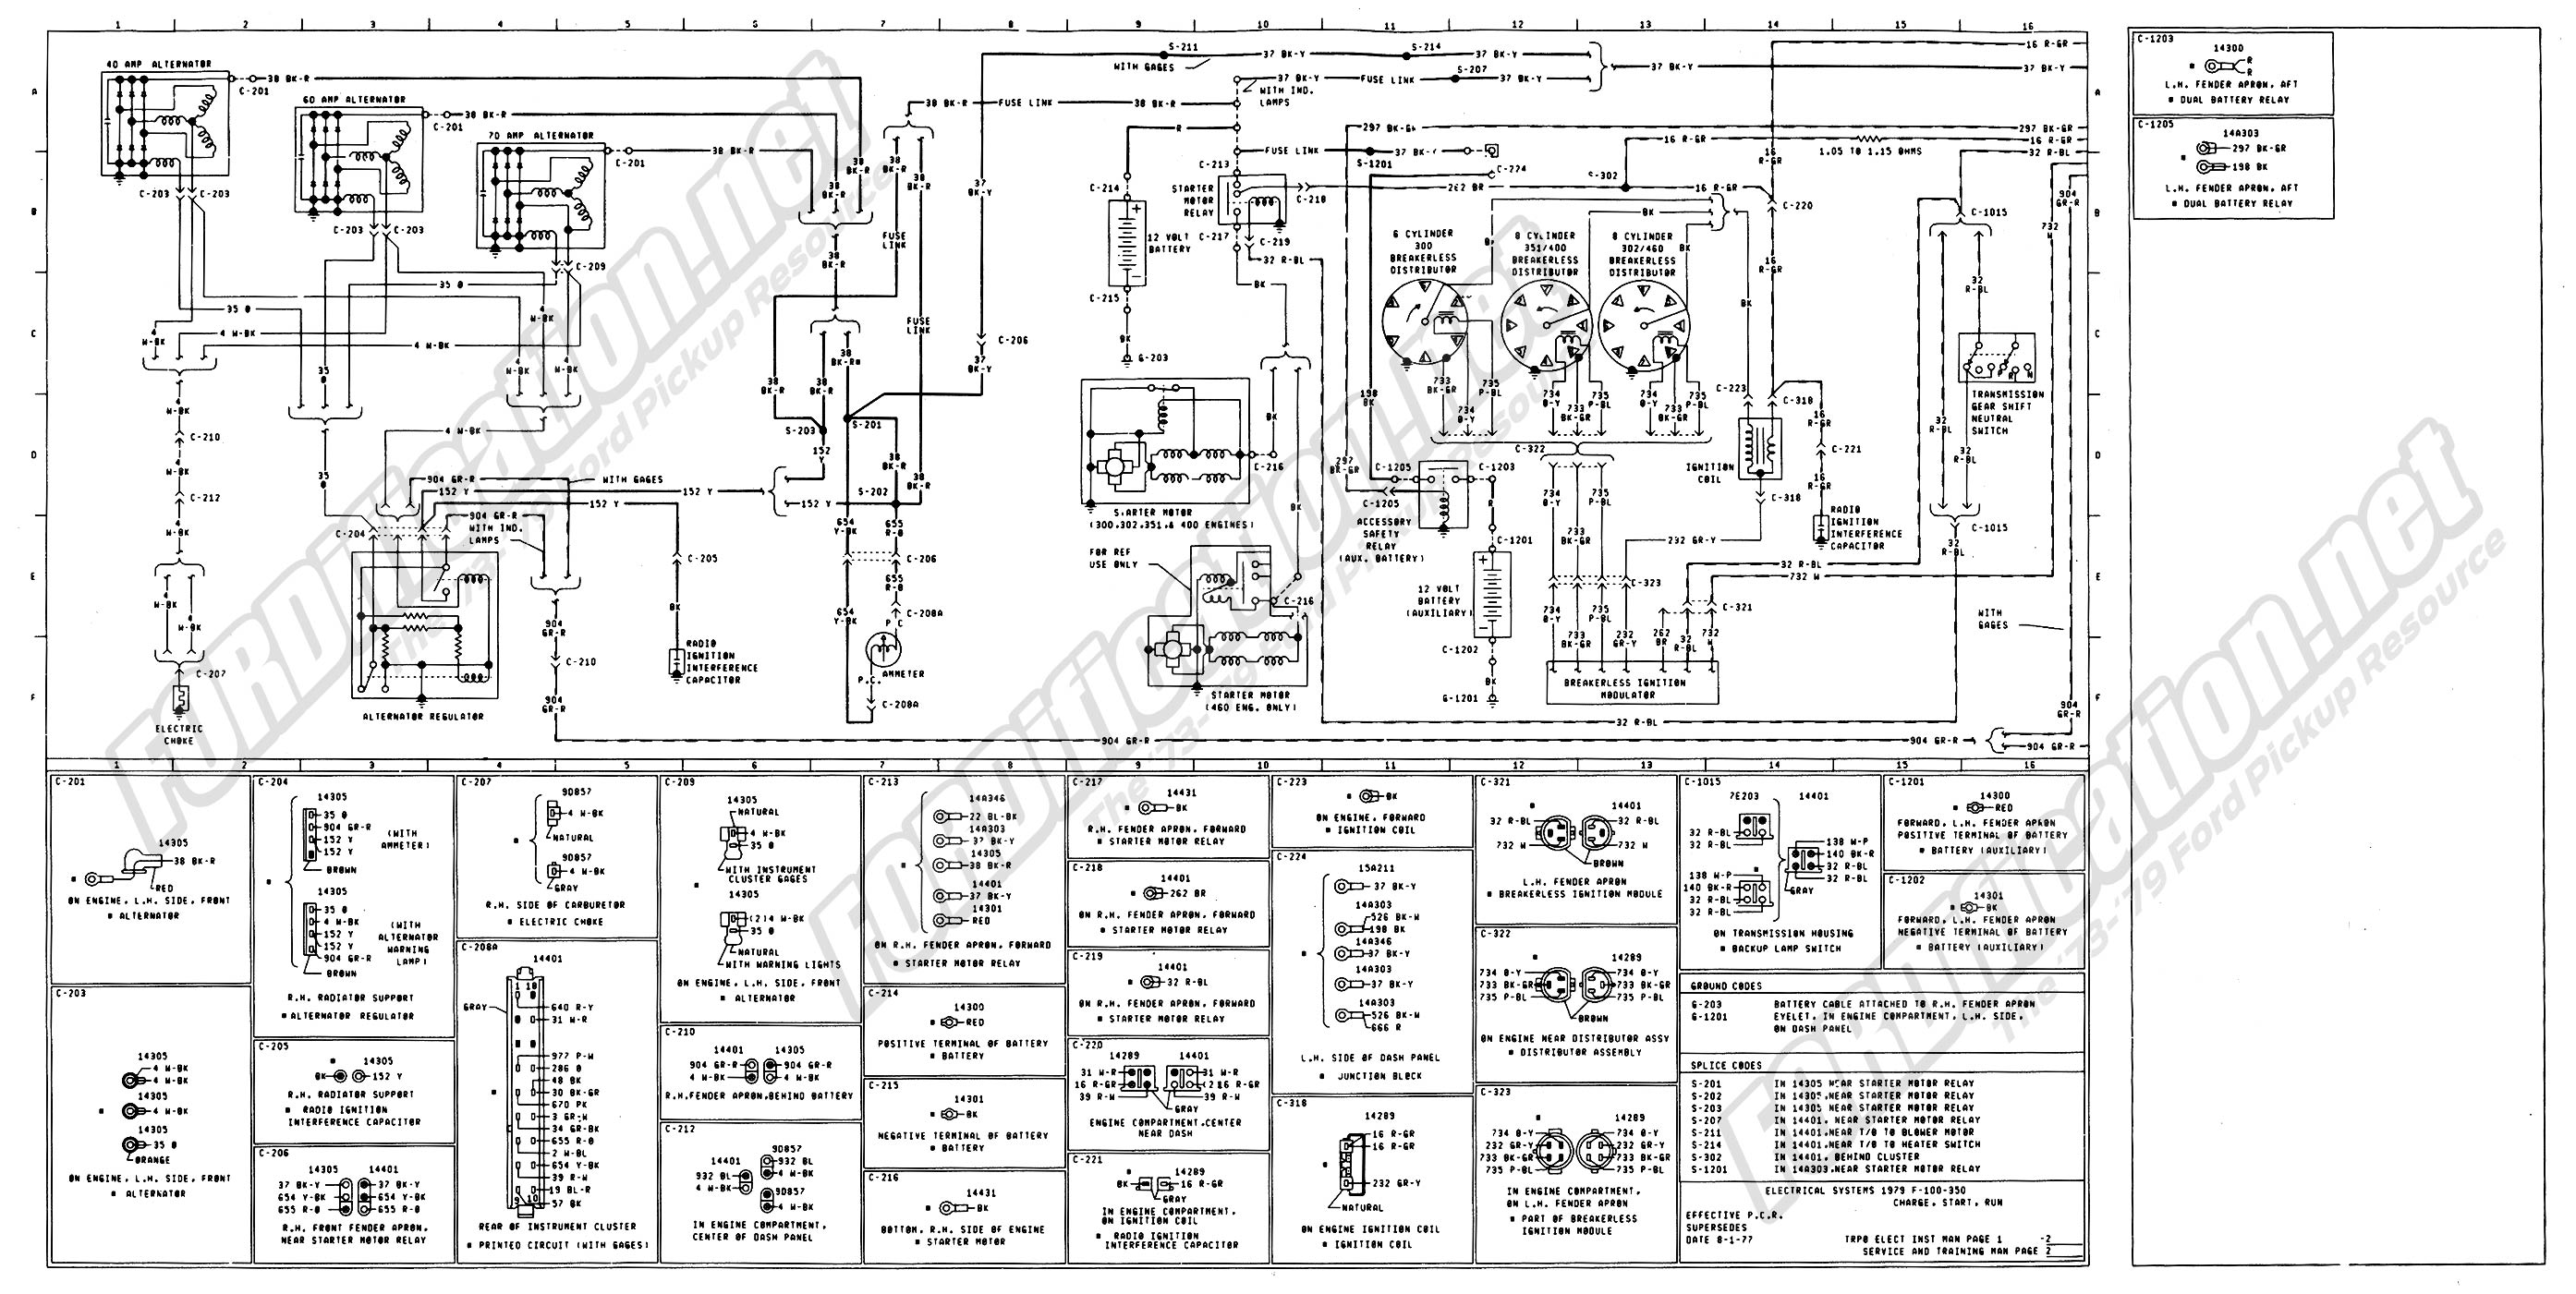 wiring_79master_2of9 1973 1979 ford truck wiring diagrams & schematics fordification net 1995 ford l9000 wiring schematics at gsmx.co